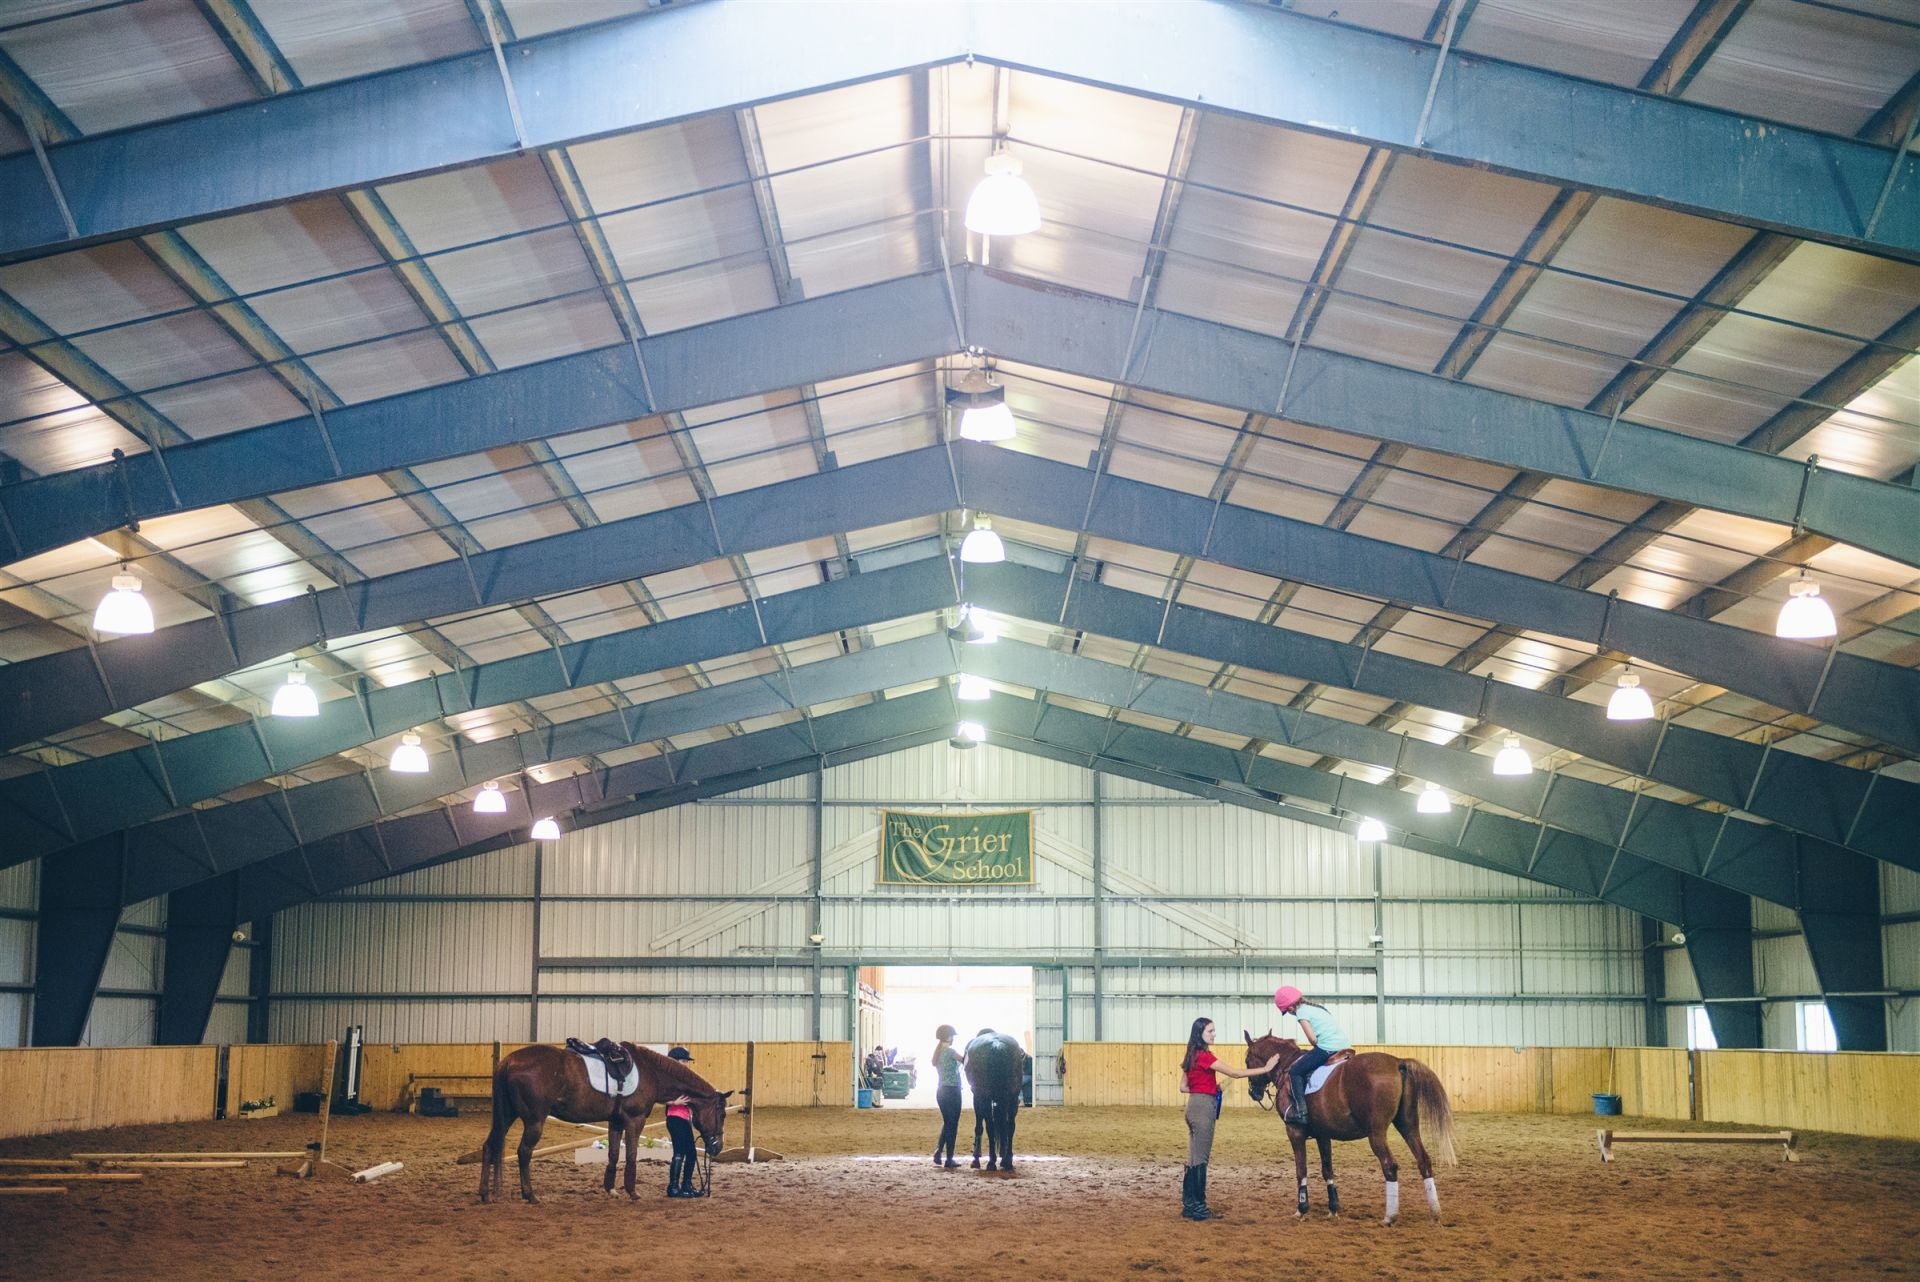 Campers that participate in equestrian activities at Grier use the indoor riding arenas or outdoor riding rings.